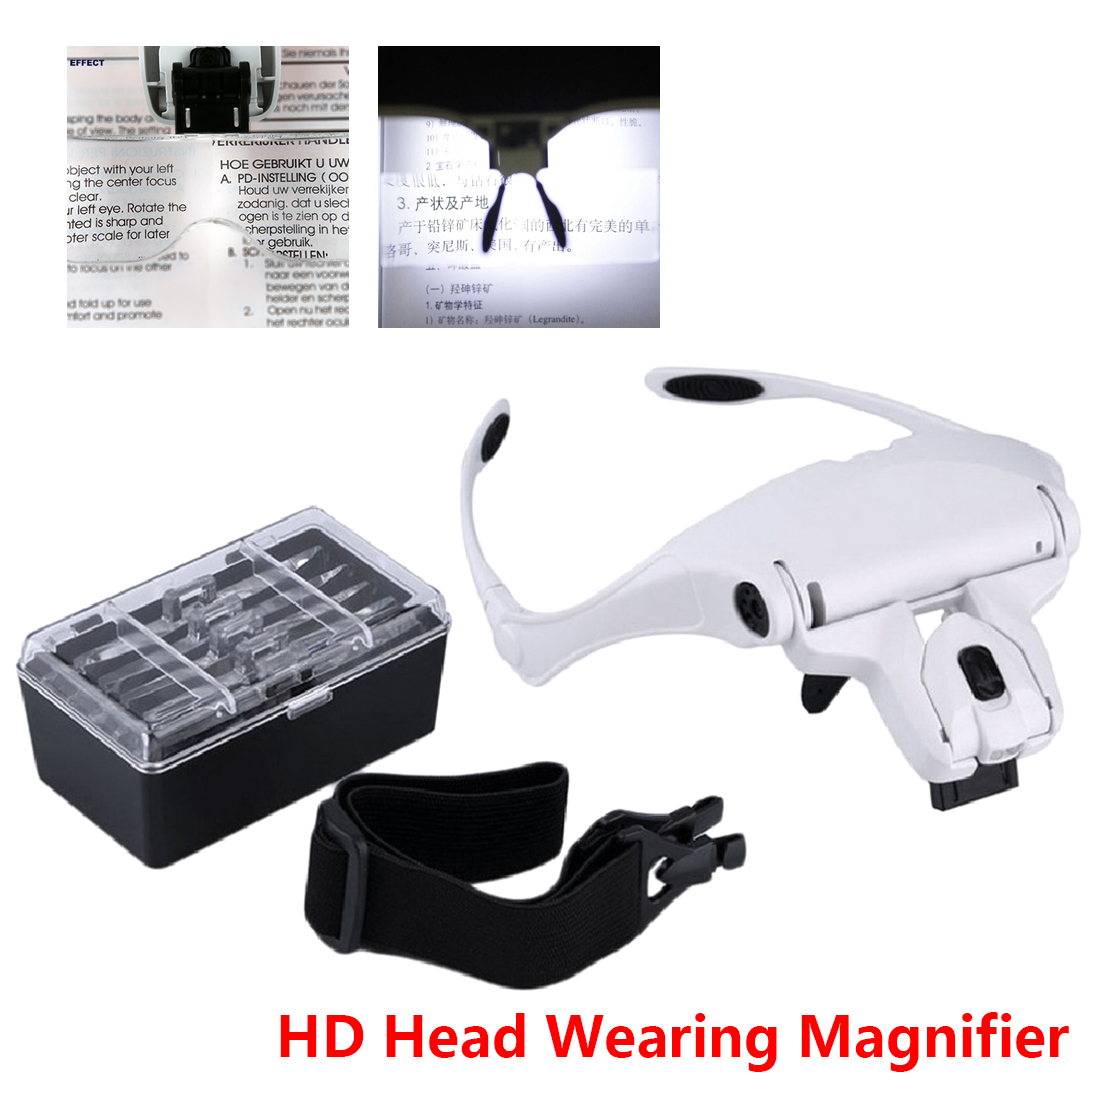 Adjustable Loupe Headband Magnifying Glass Magnifier 1.0X 1.5X 2.0X 2.5X 3.5X 5 Lens with LED Magnifying Glasses 1 0x 3 5x 5 lens magnifier adjustable headband loupe magnifying glasses with 2 led lamp headset jewelry circuit repair tools